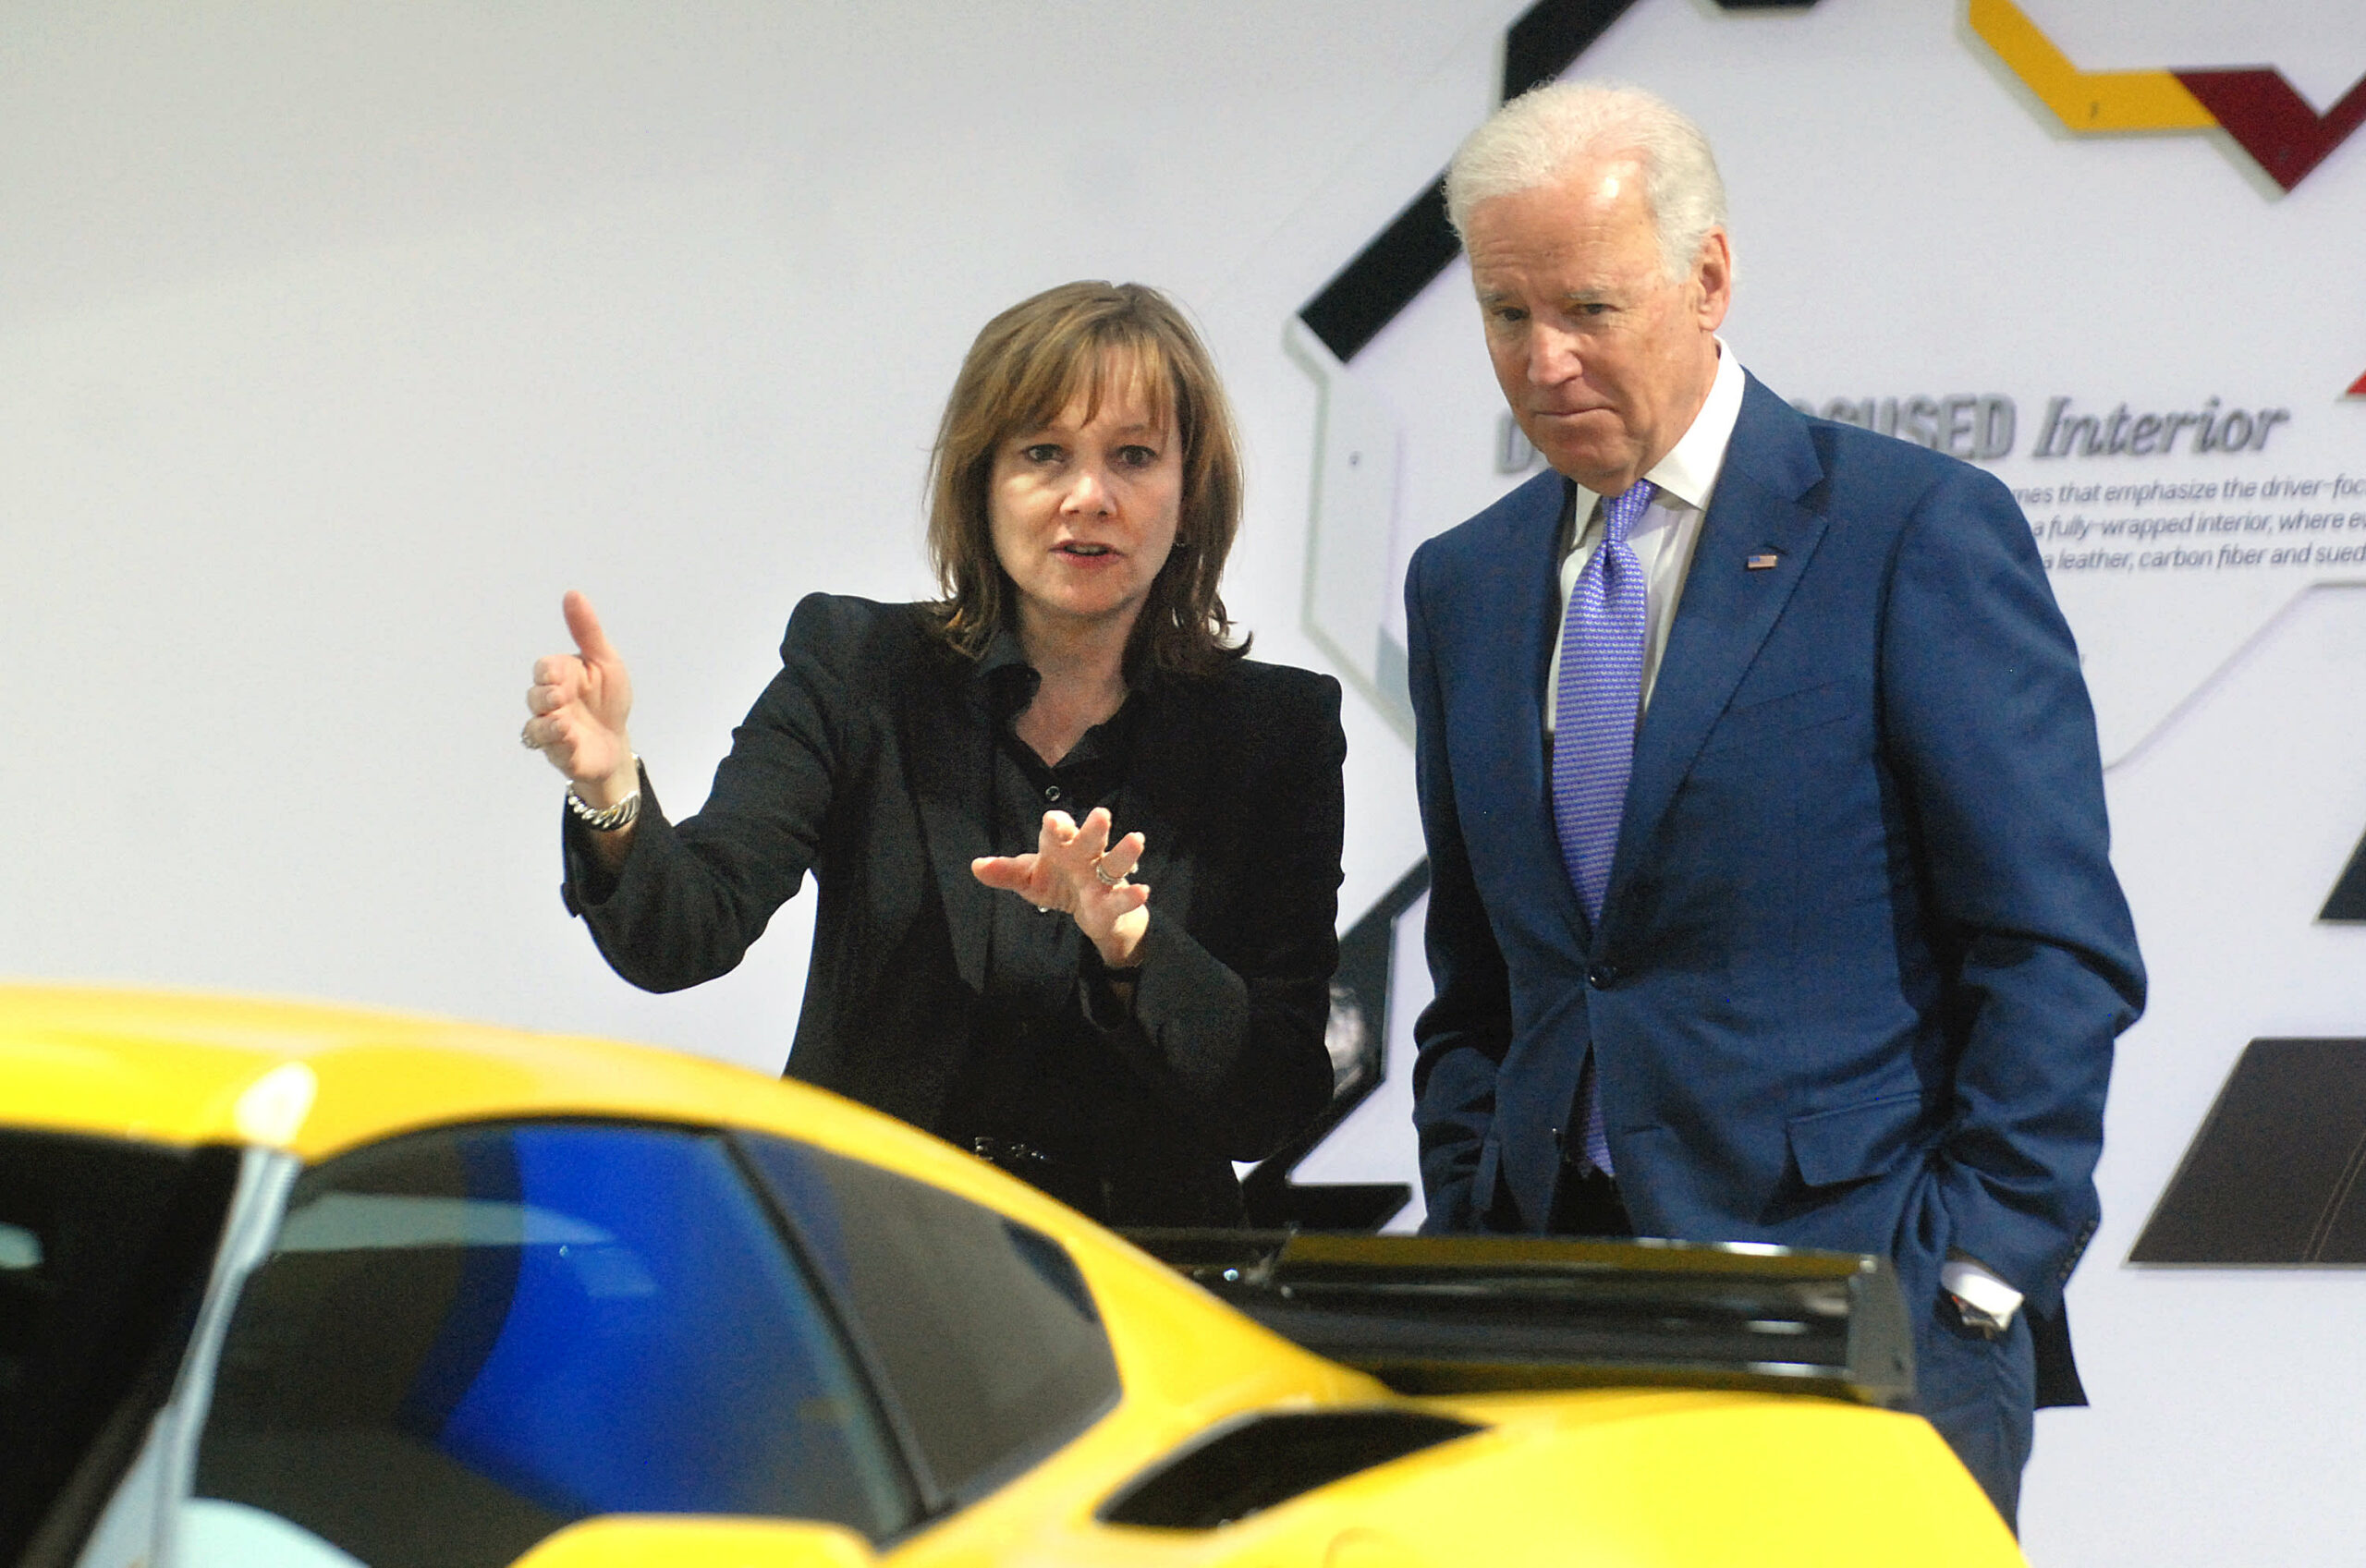 Biden pushes for EVs to make up 40% or extra of U.S. auto gross sales by 2030